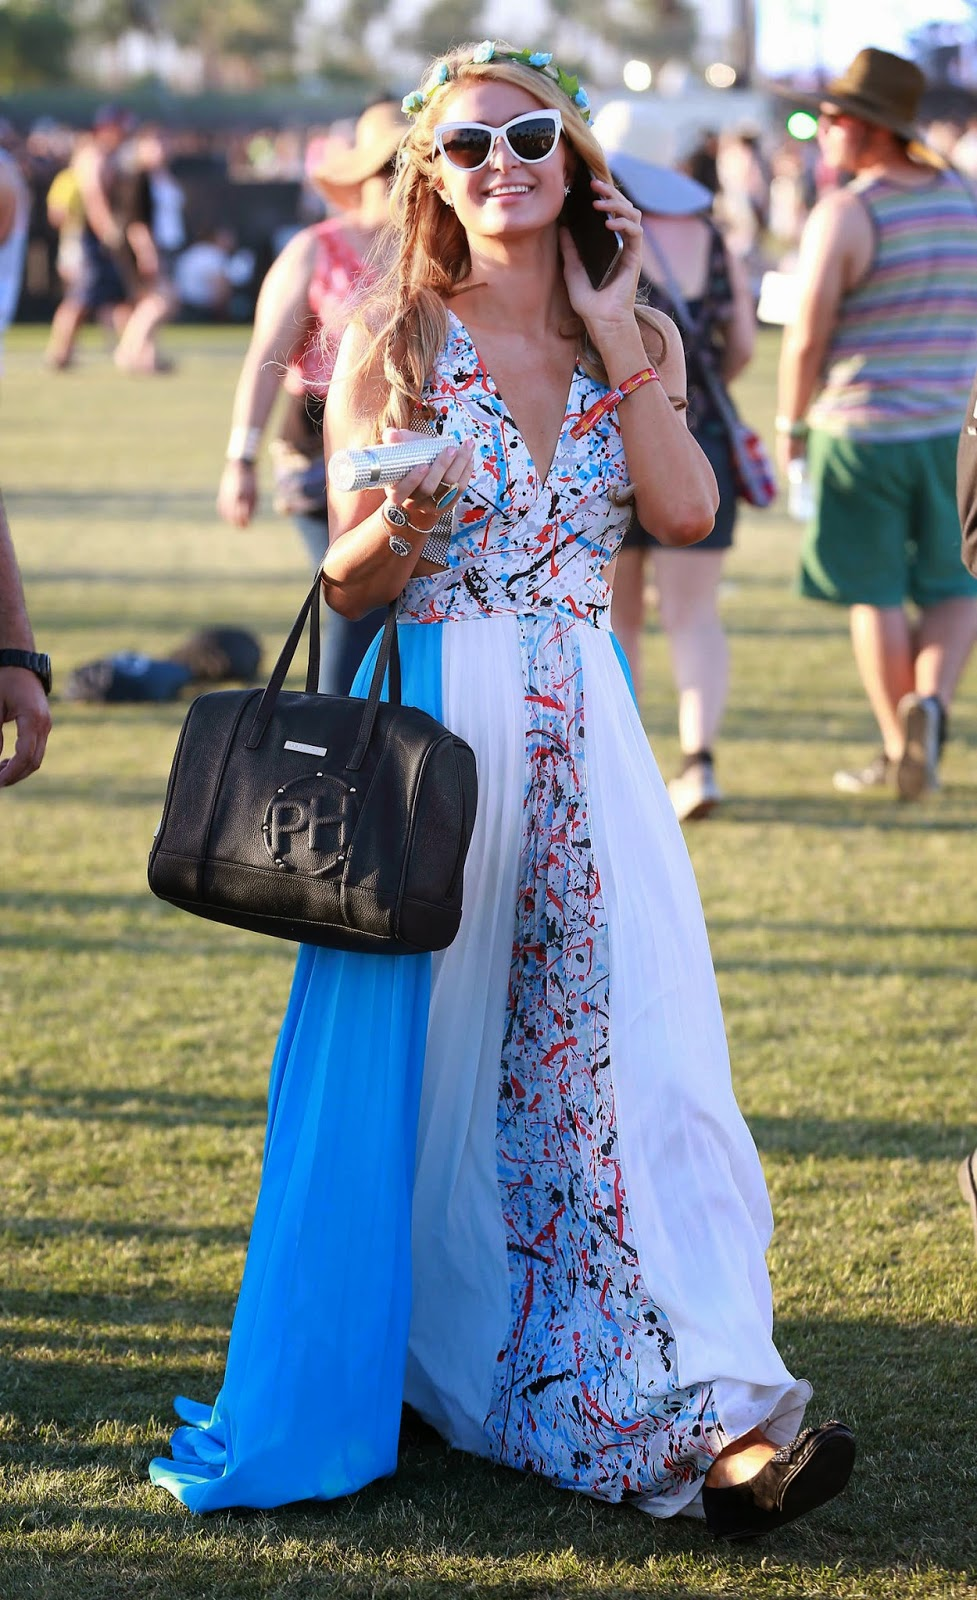 Paris Hilton – Coachella Valley Music and Arts Festival Day 3 in Indio